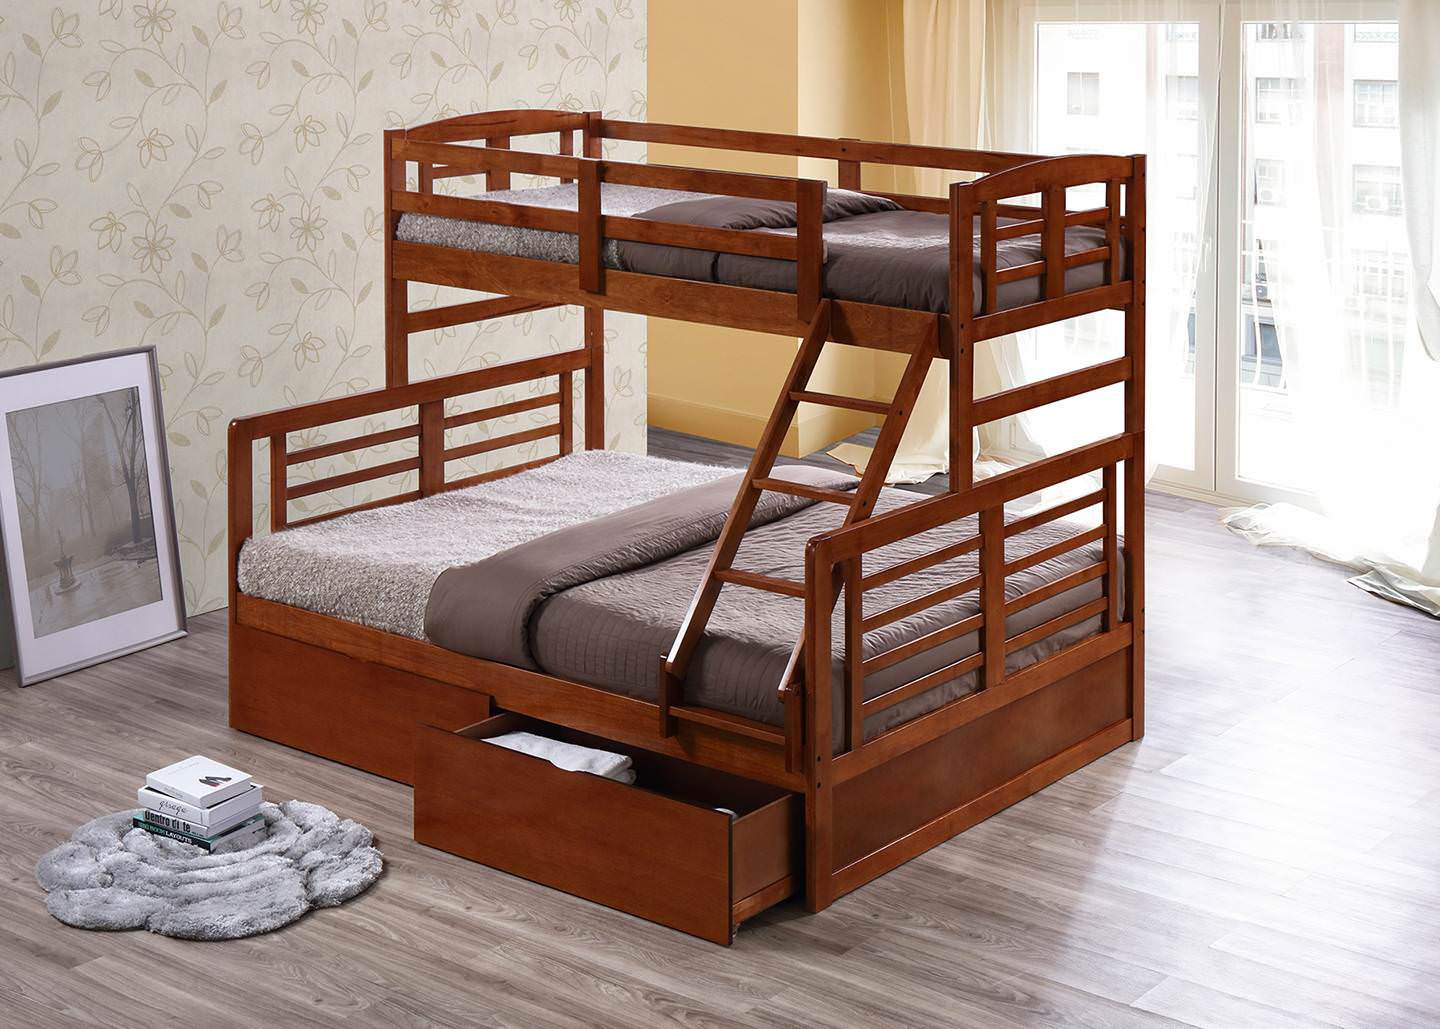 Bunk Bed with Storage & Bunk Bed | Singer Malaysia